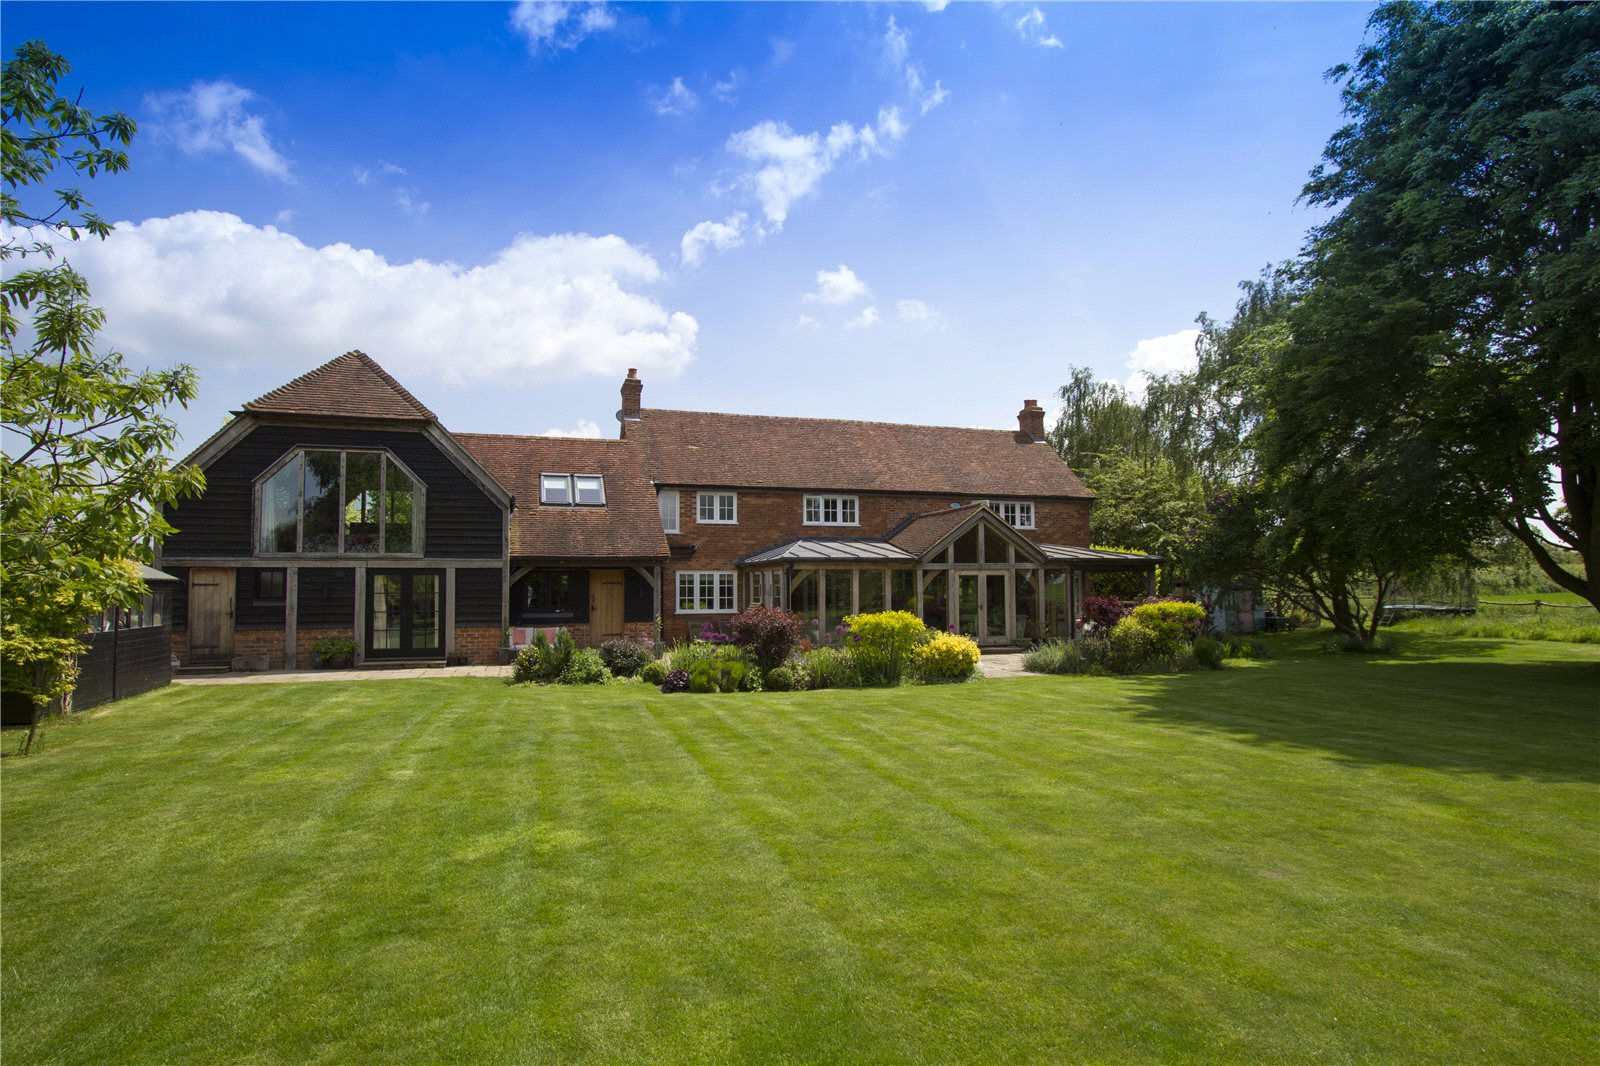 Villa per Vendita alle ore Lower End, Great Milton, Oxford, OX44 Inghilterra